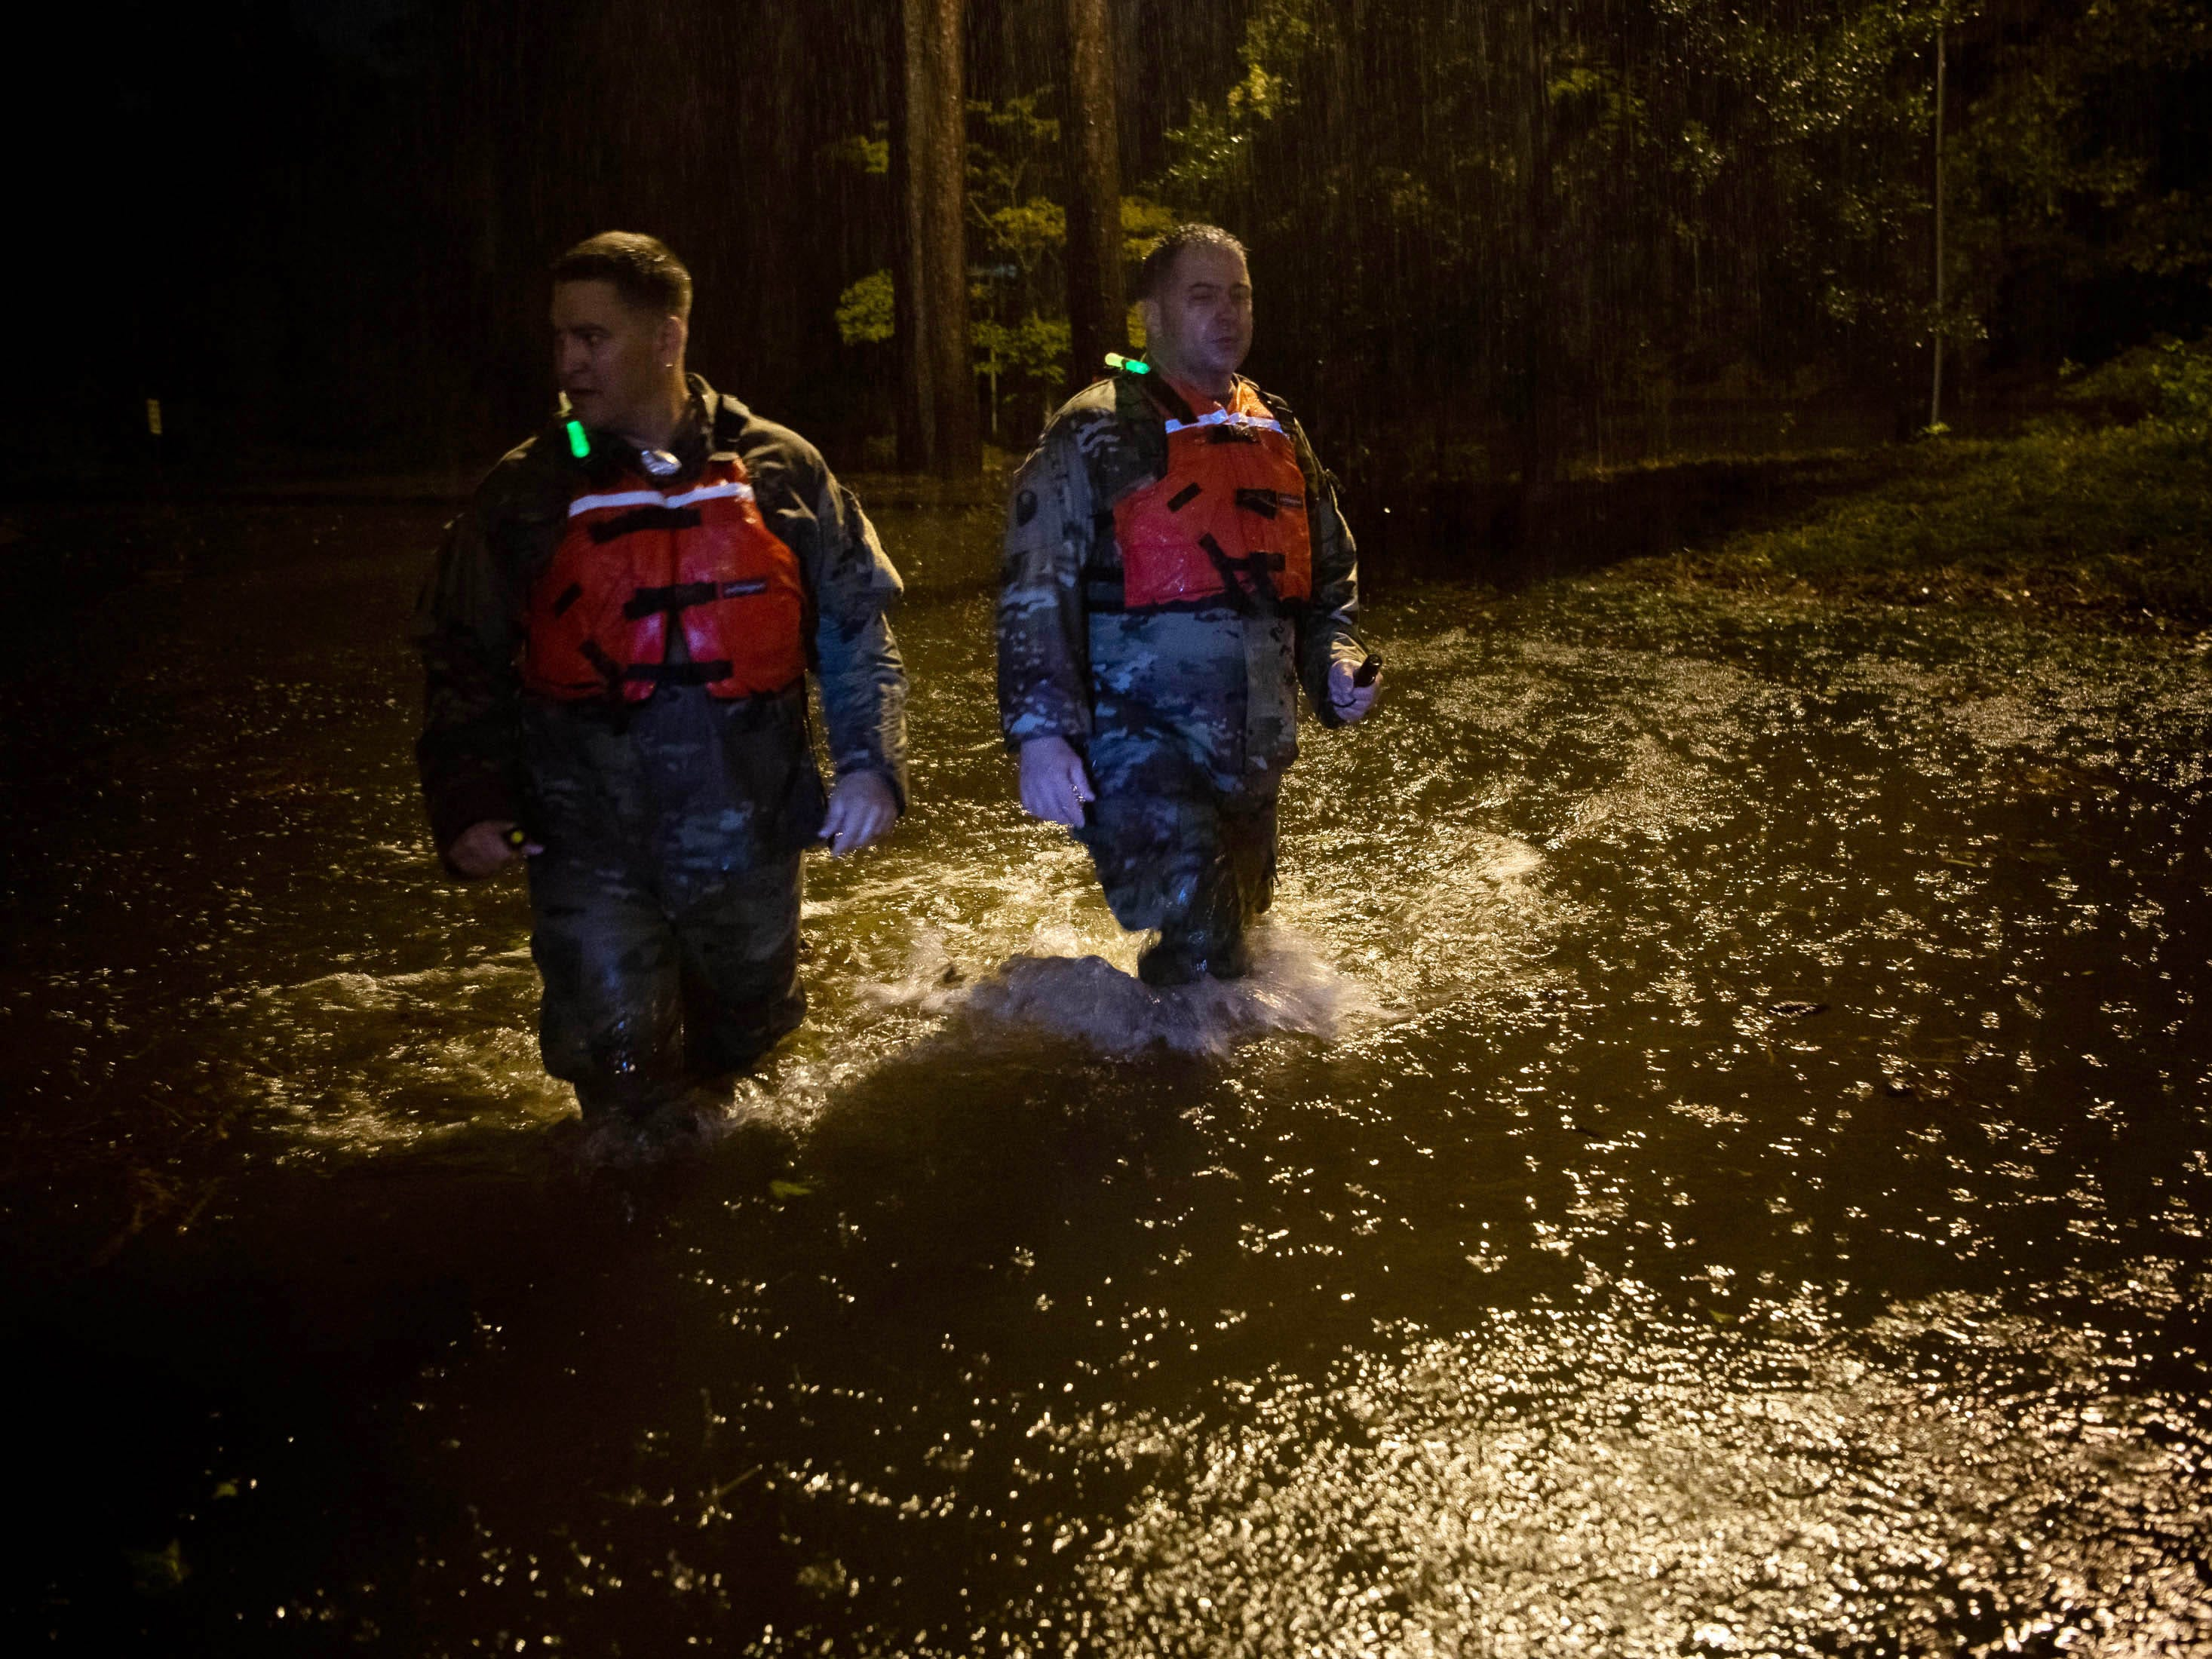 First Sgt. Christopher Jones, left, and Command Sgt. Maj. Sid Baker, right, of the North Carolina National Guard patrol a flooded neighborhood as rain from tropical storm Florence continues to fall on Lumberton, N.C. on Sept. 15, 2018.